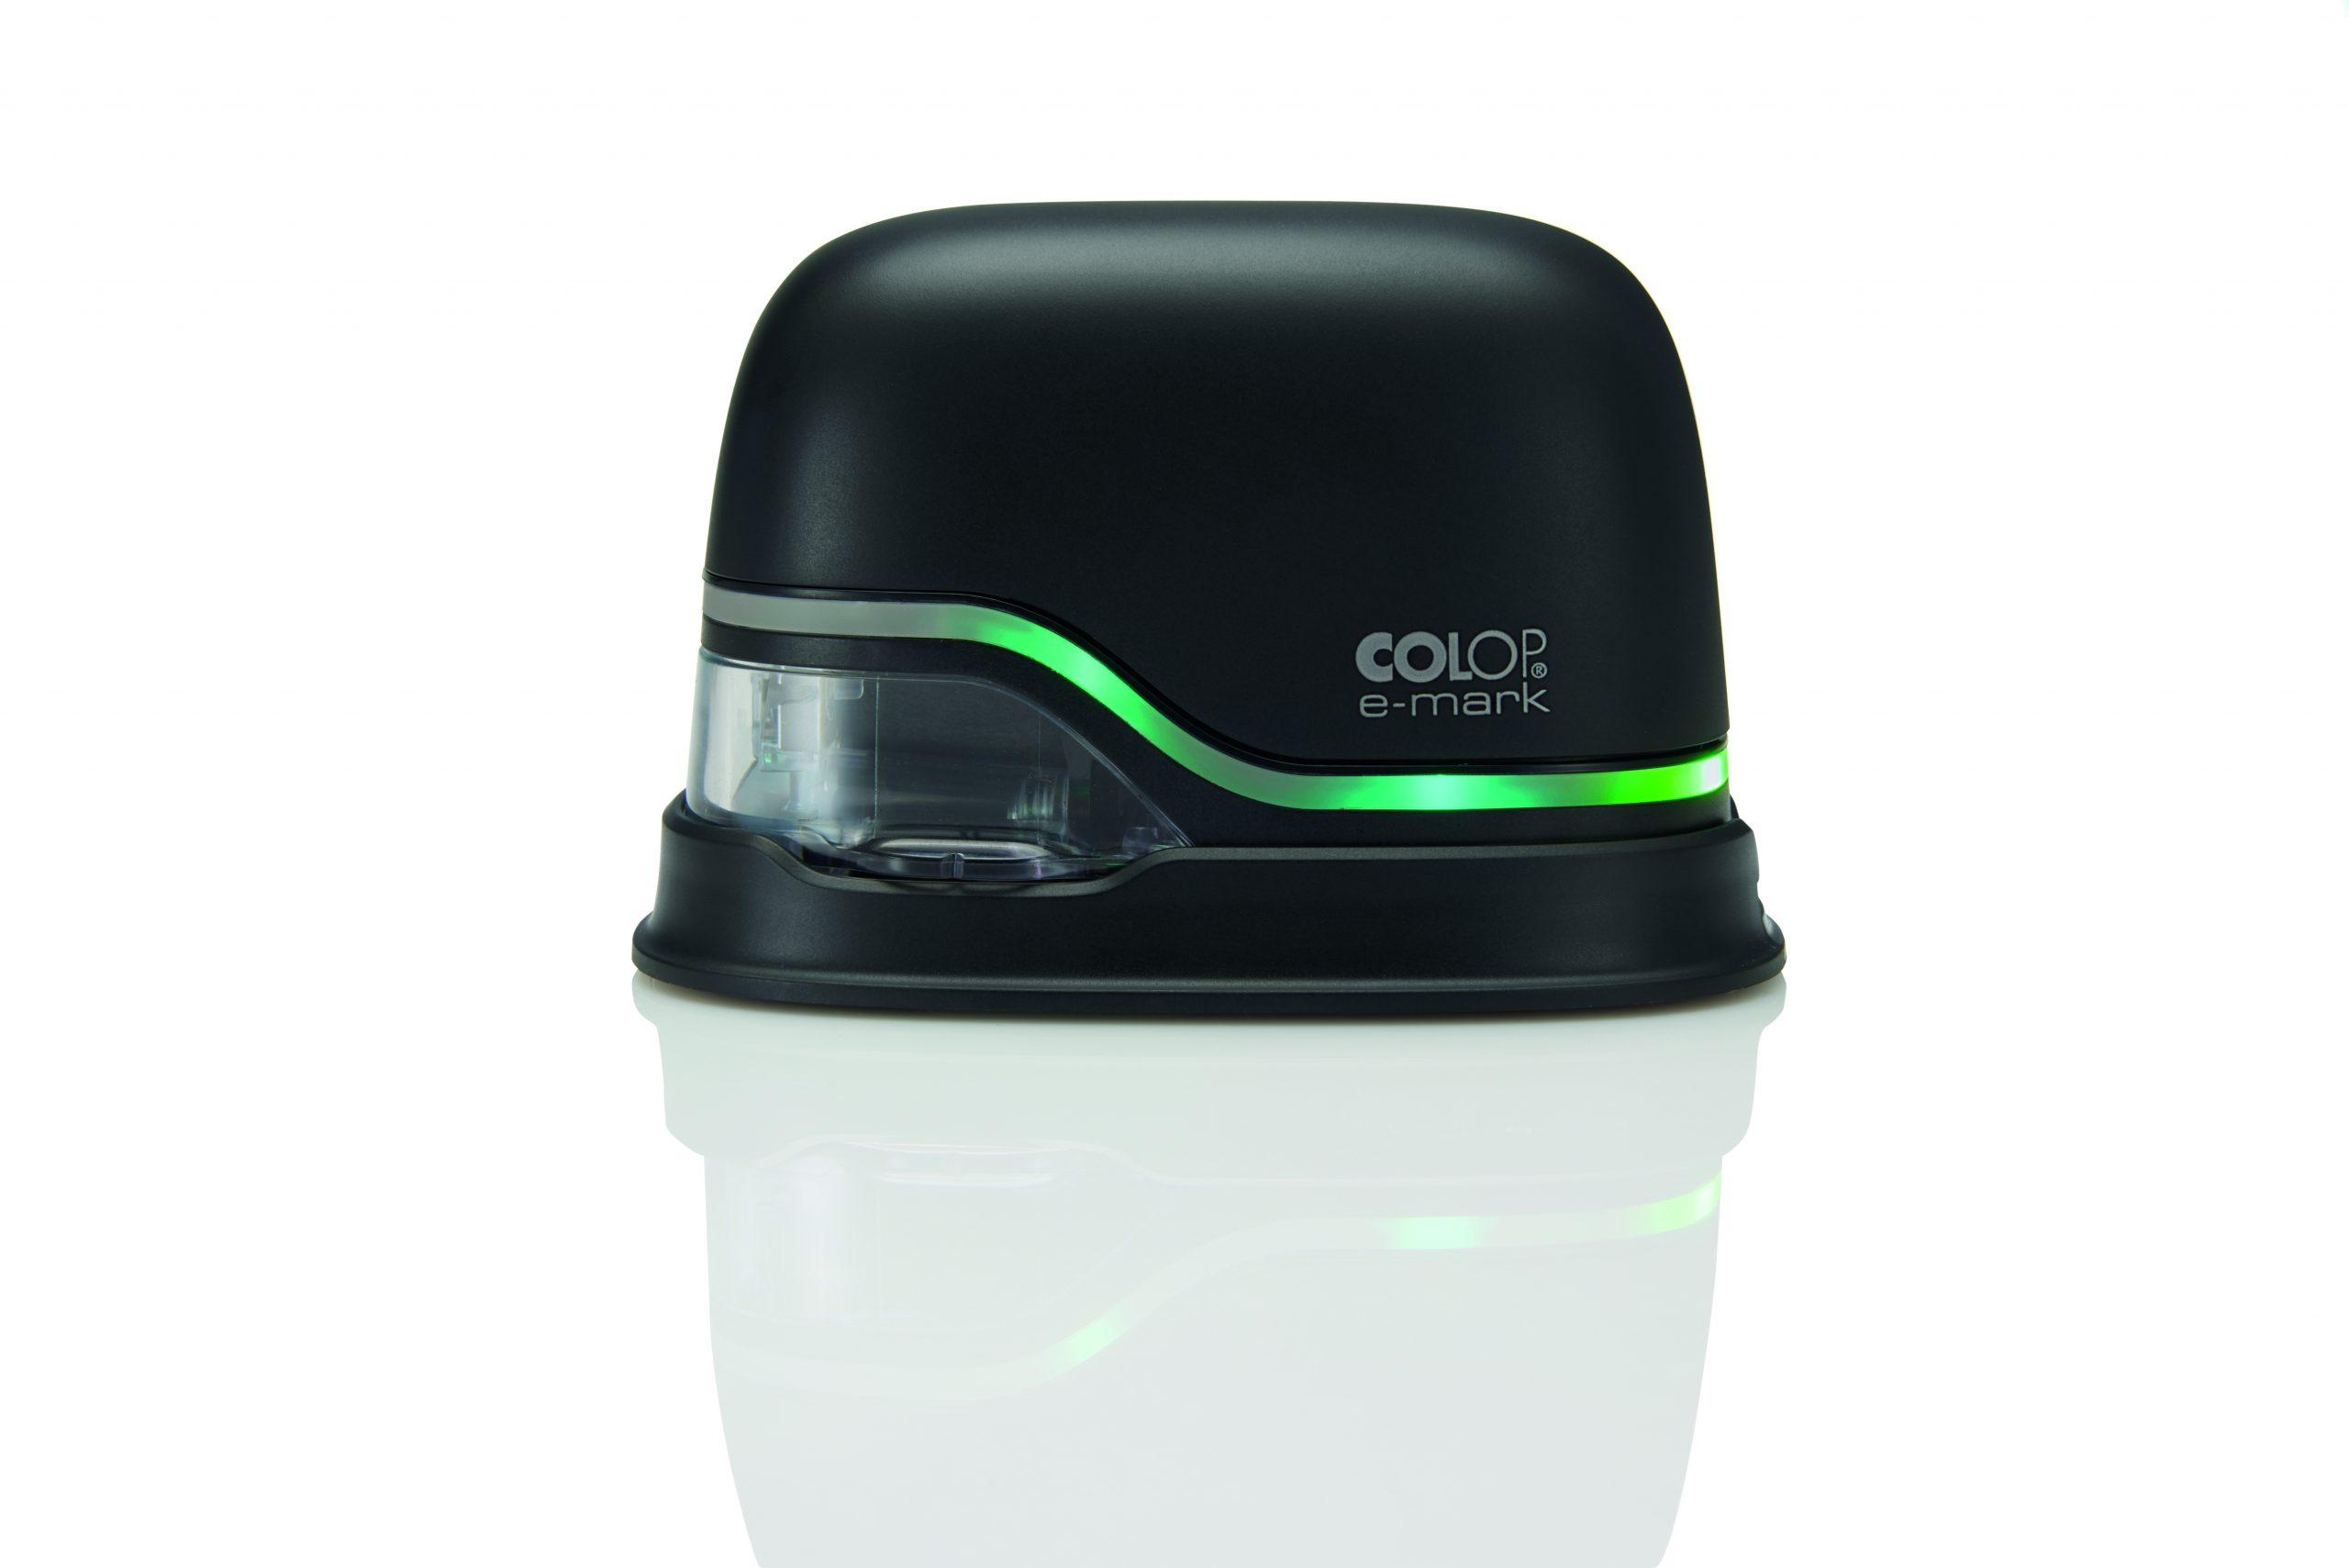 COLOP e-mark: New portable electronic stamp to offer high quality imprints 2